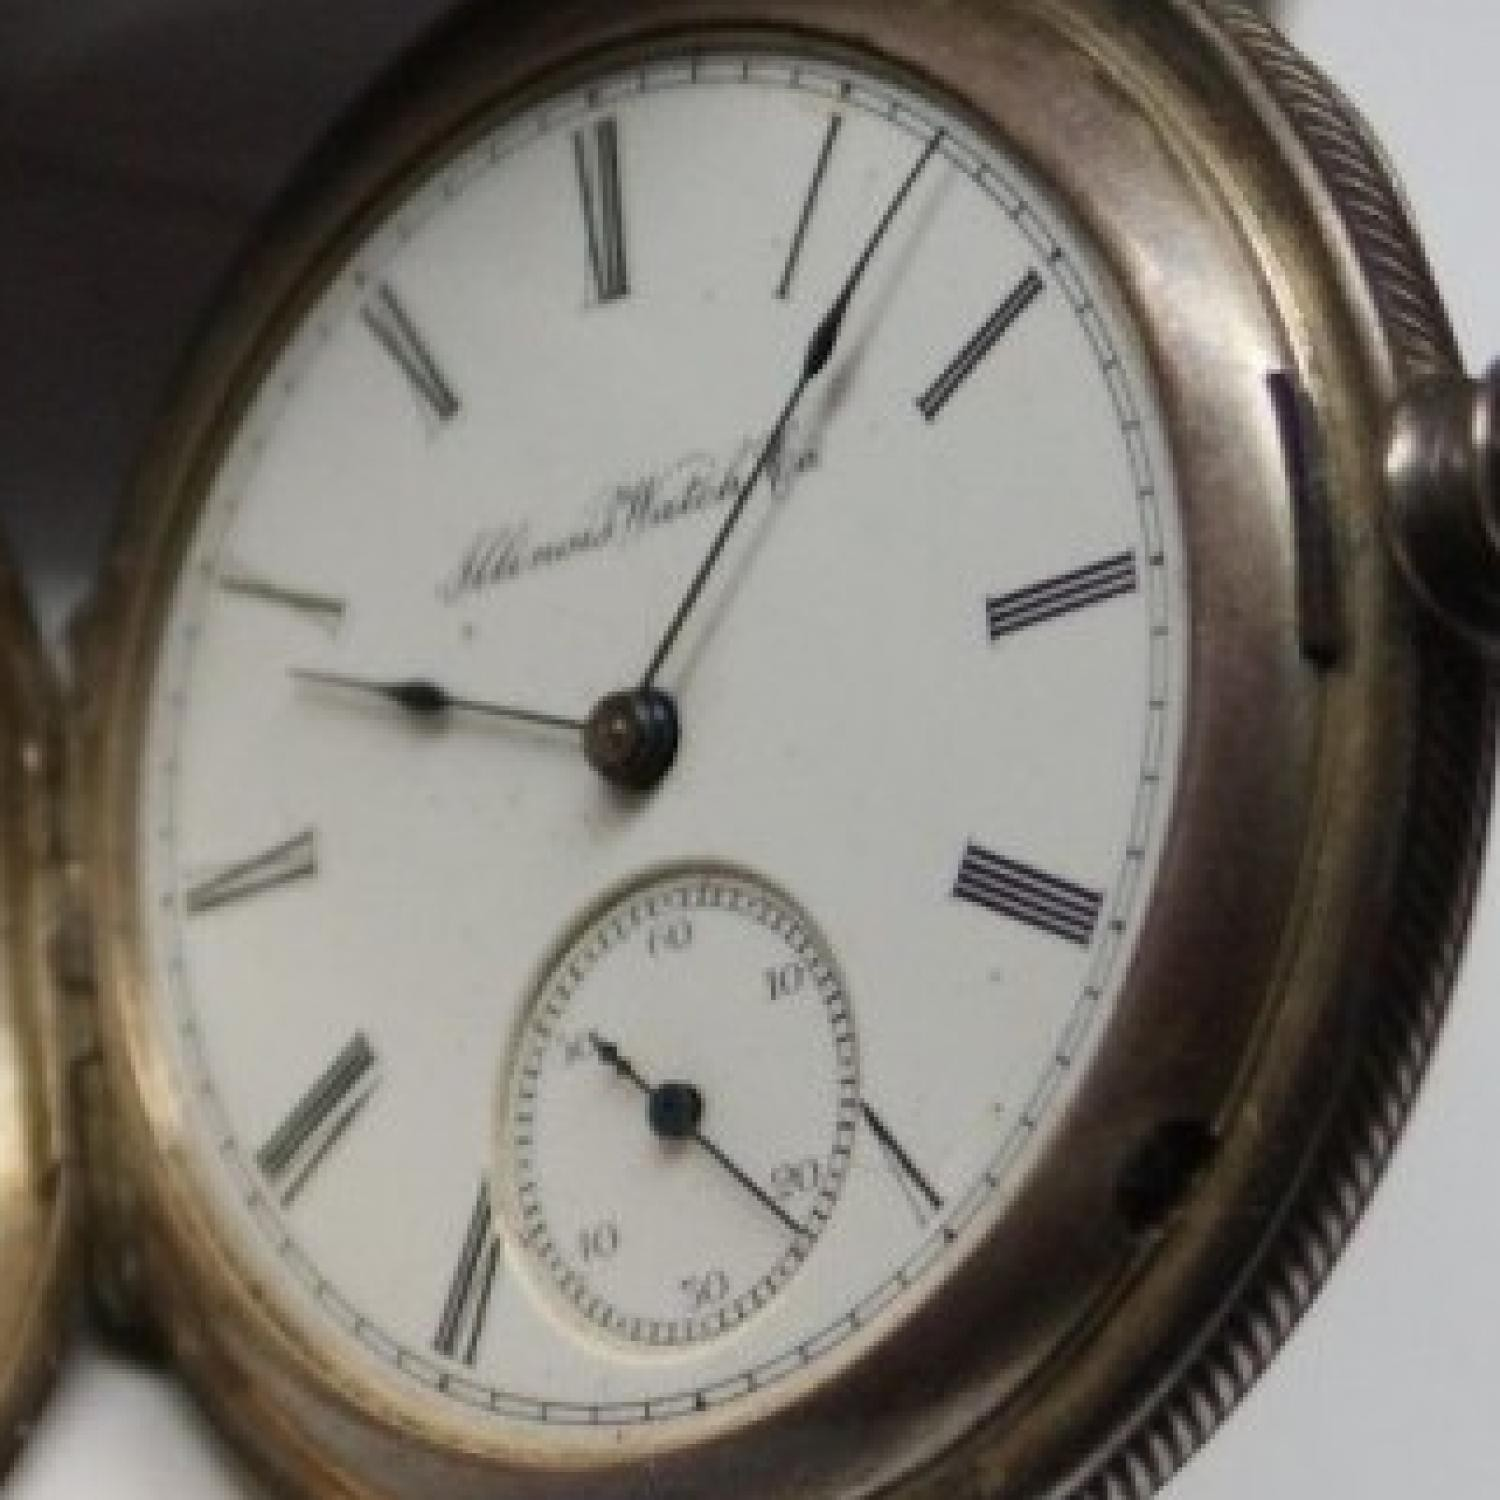 Image of Illinois 110 #1272691 Dial